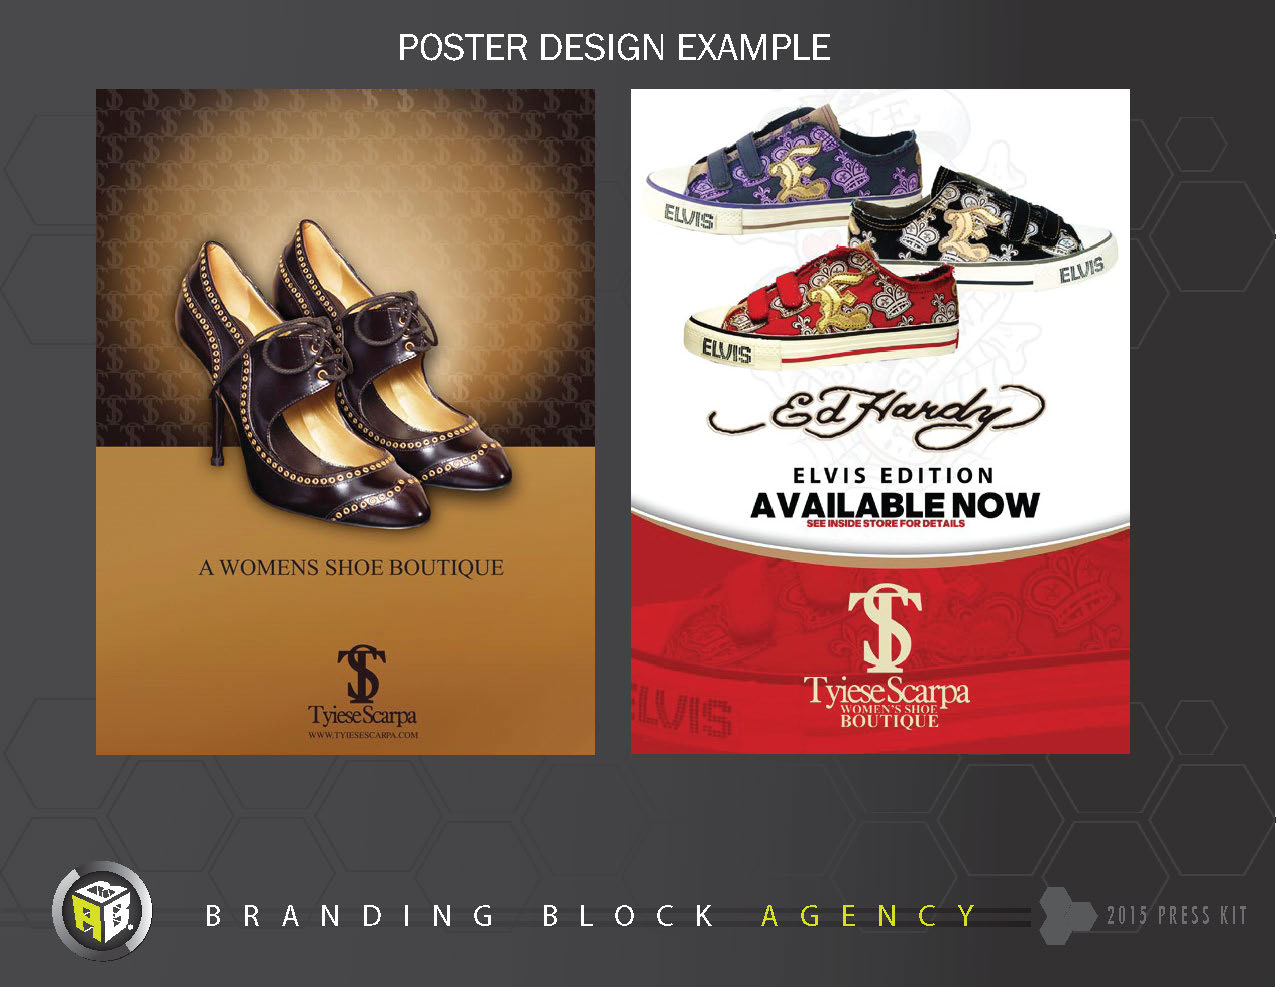 Poster design 99 - Print Digital Poster Design For High End Shoe Boutique Located In Memphis